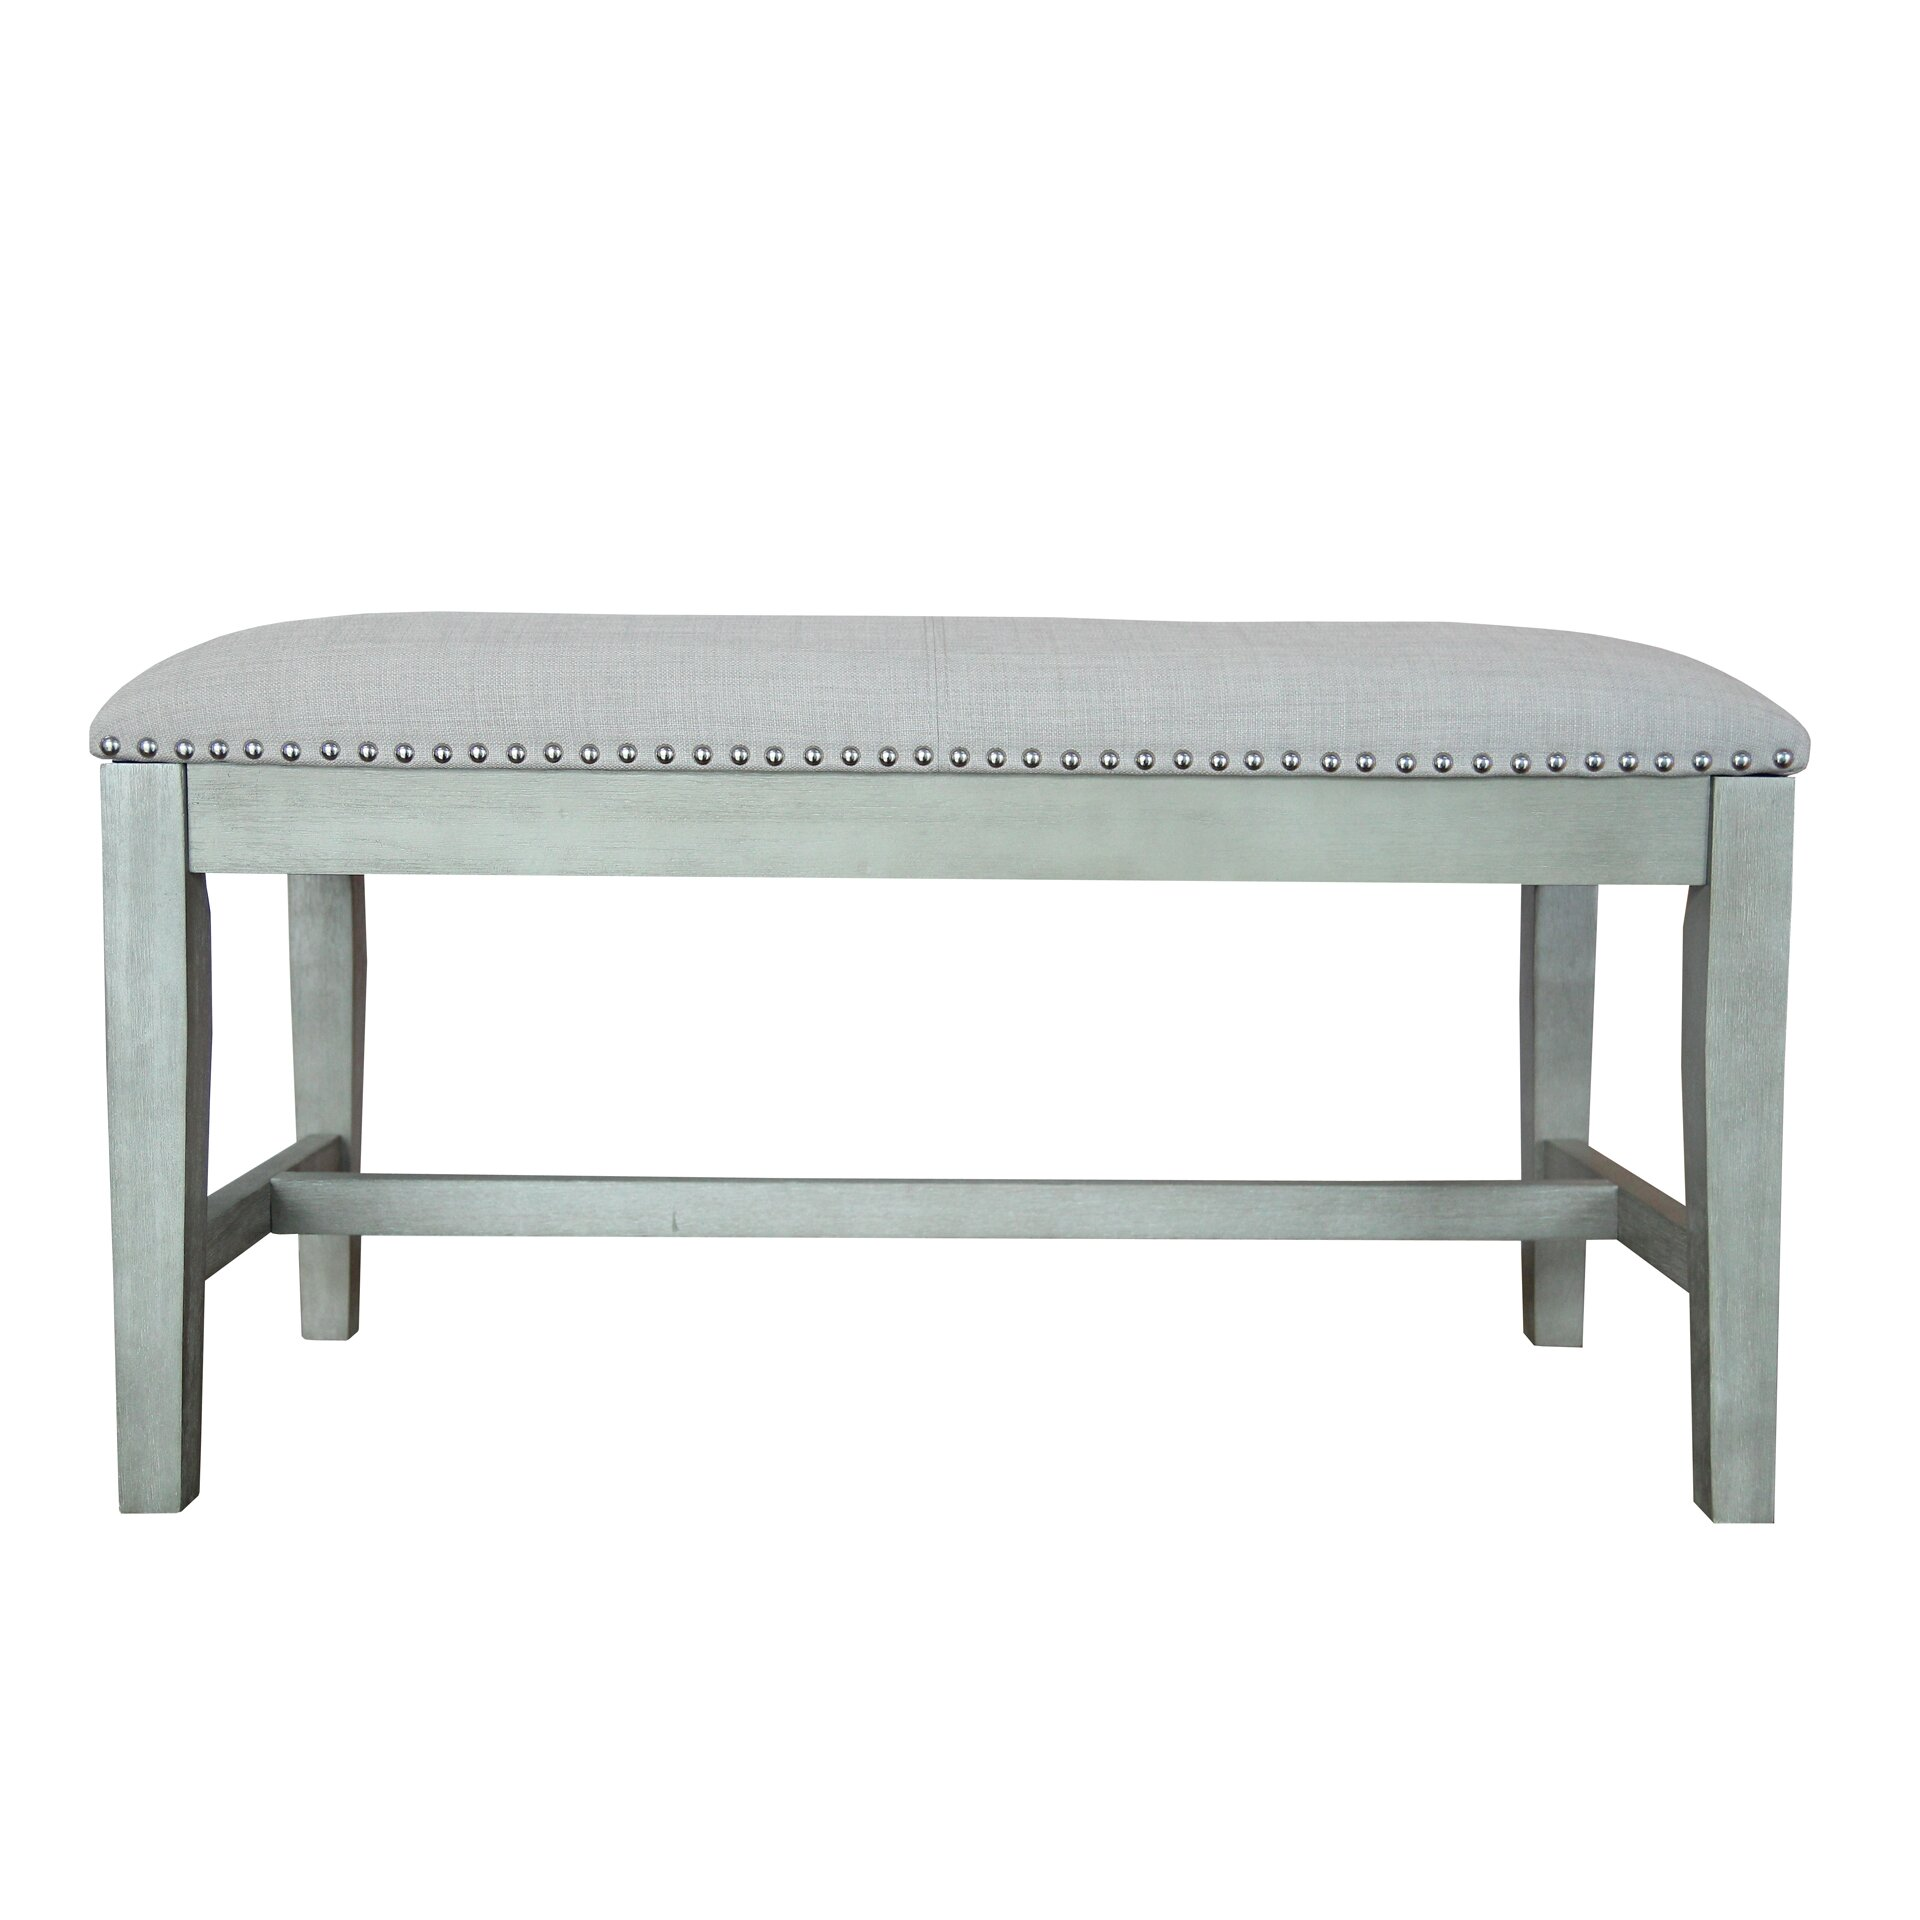 Small Bench For Bedroom Small Bench For Bedroom Small Bench Bedroom Blue Brown White